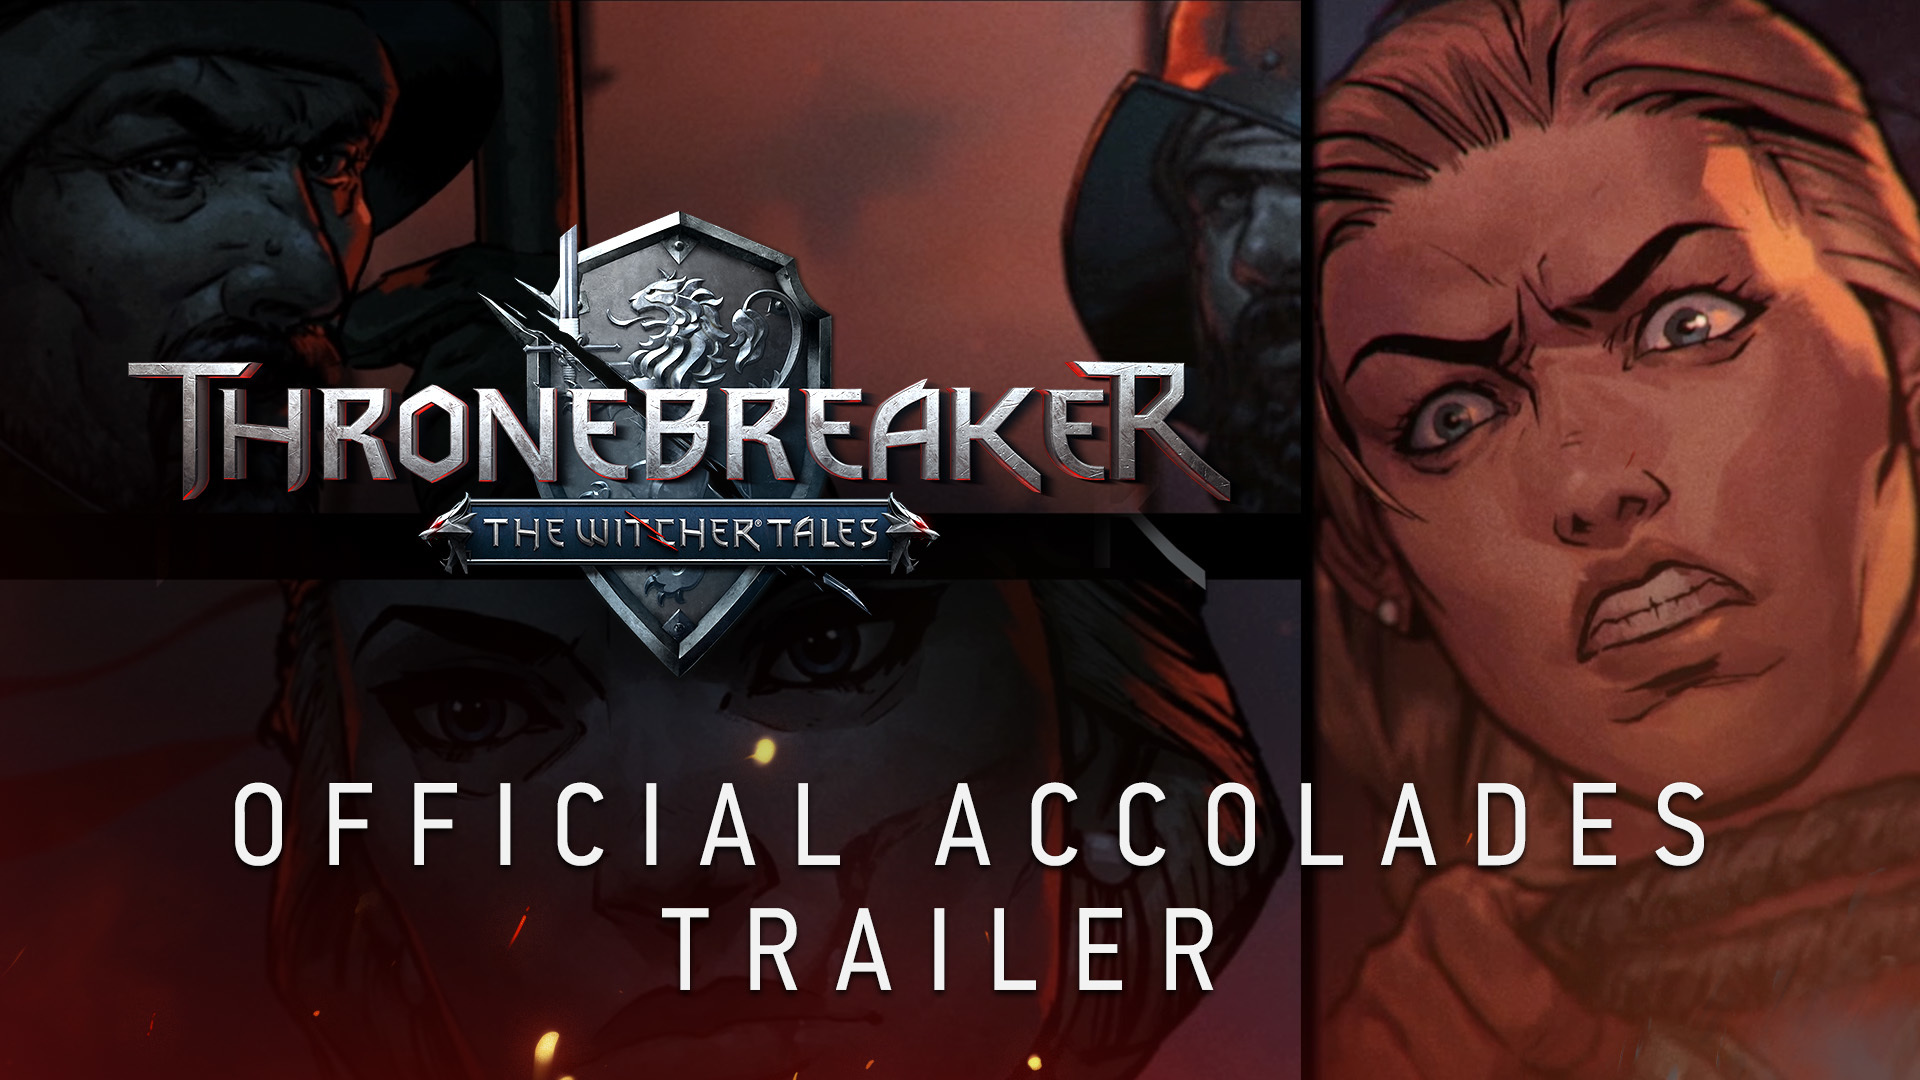 Thronebreaker: The Witcher Tales is now available on Steam!